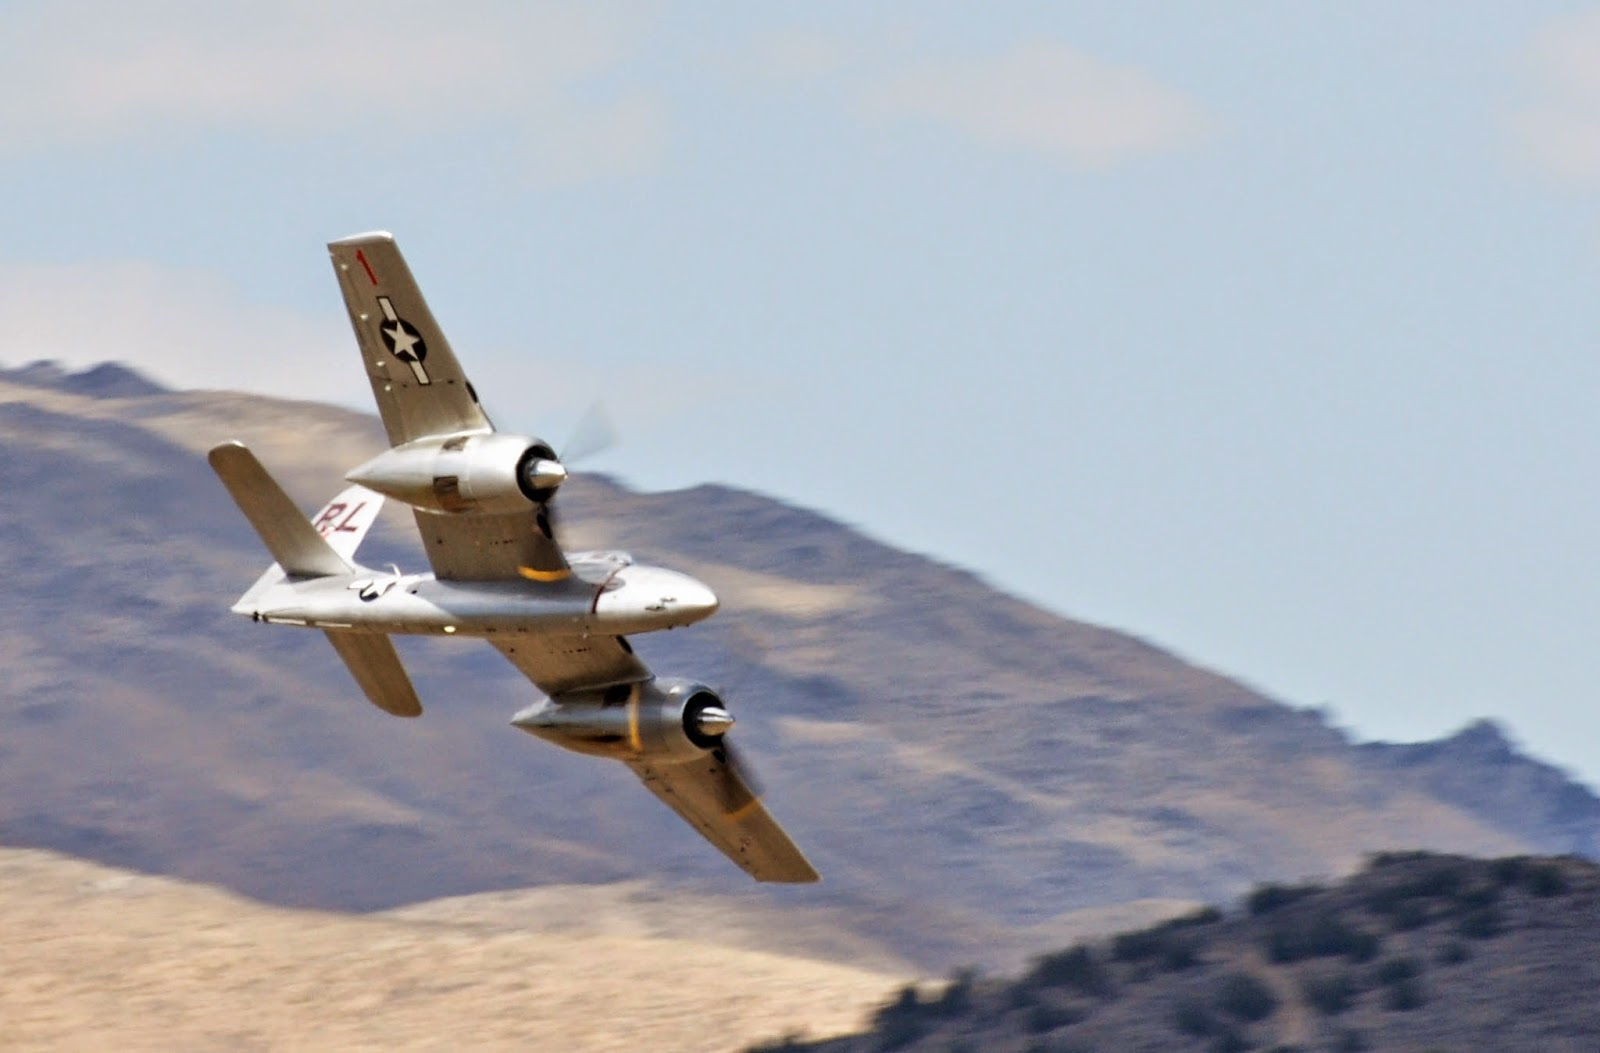 My favorite weekend of the year: The Reno Air Races